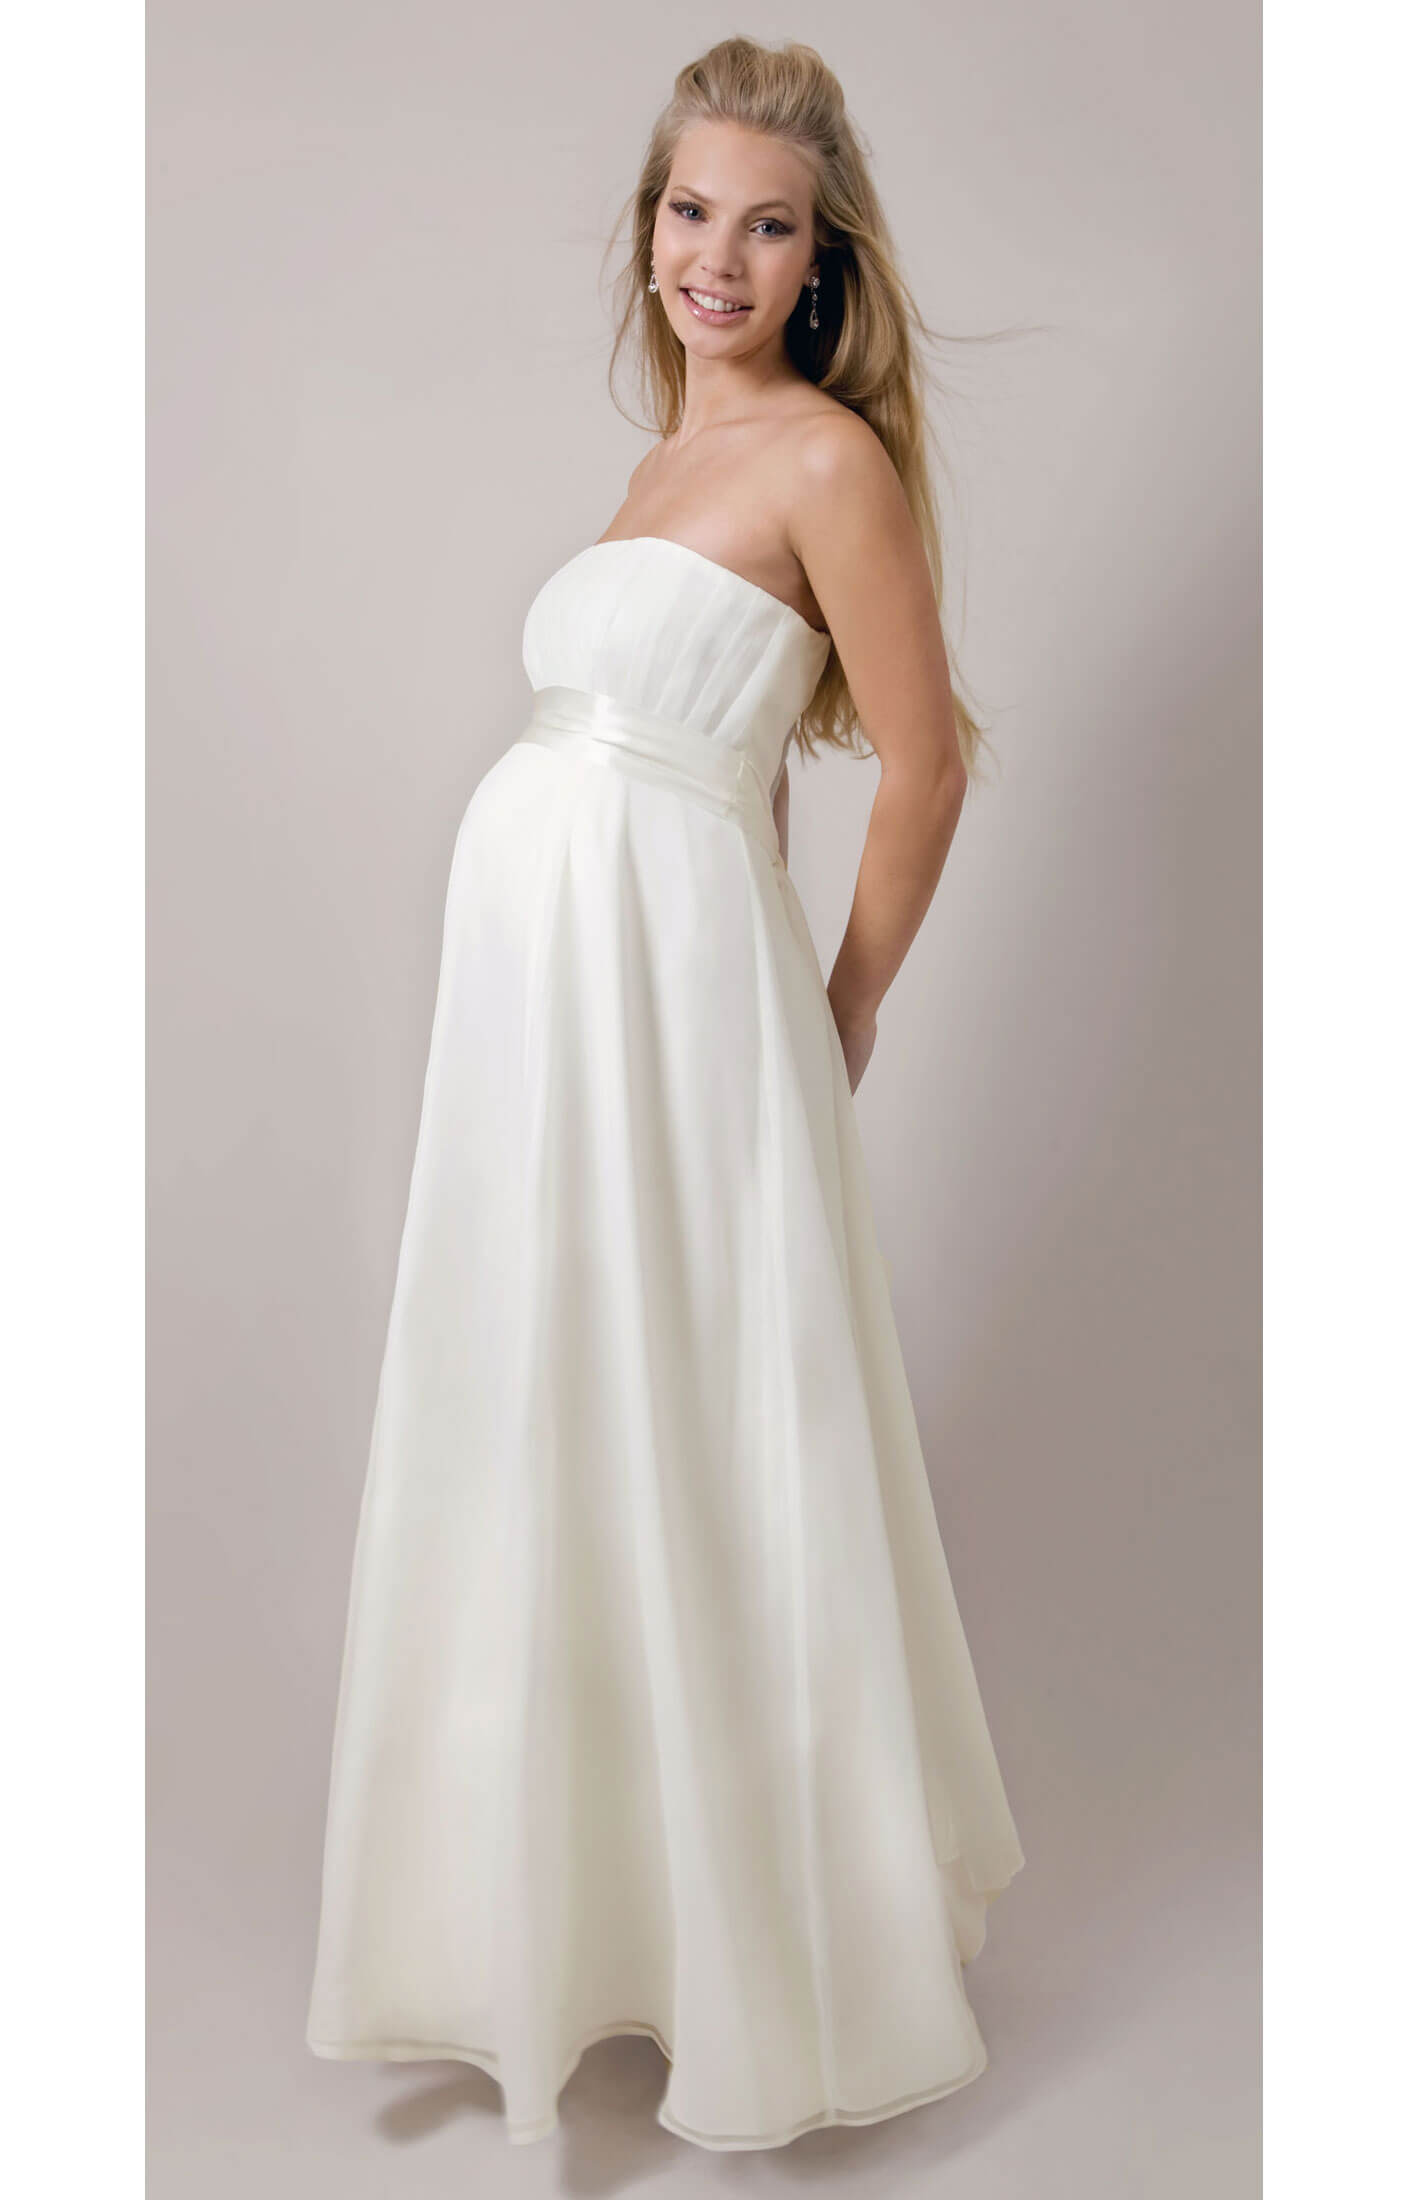 Athena maternity gown maternity wedding dresses evening wear athena maternity gown by tiffany rose ombrellifo Gallery